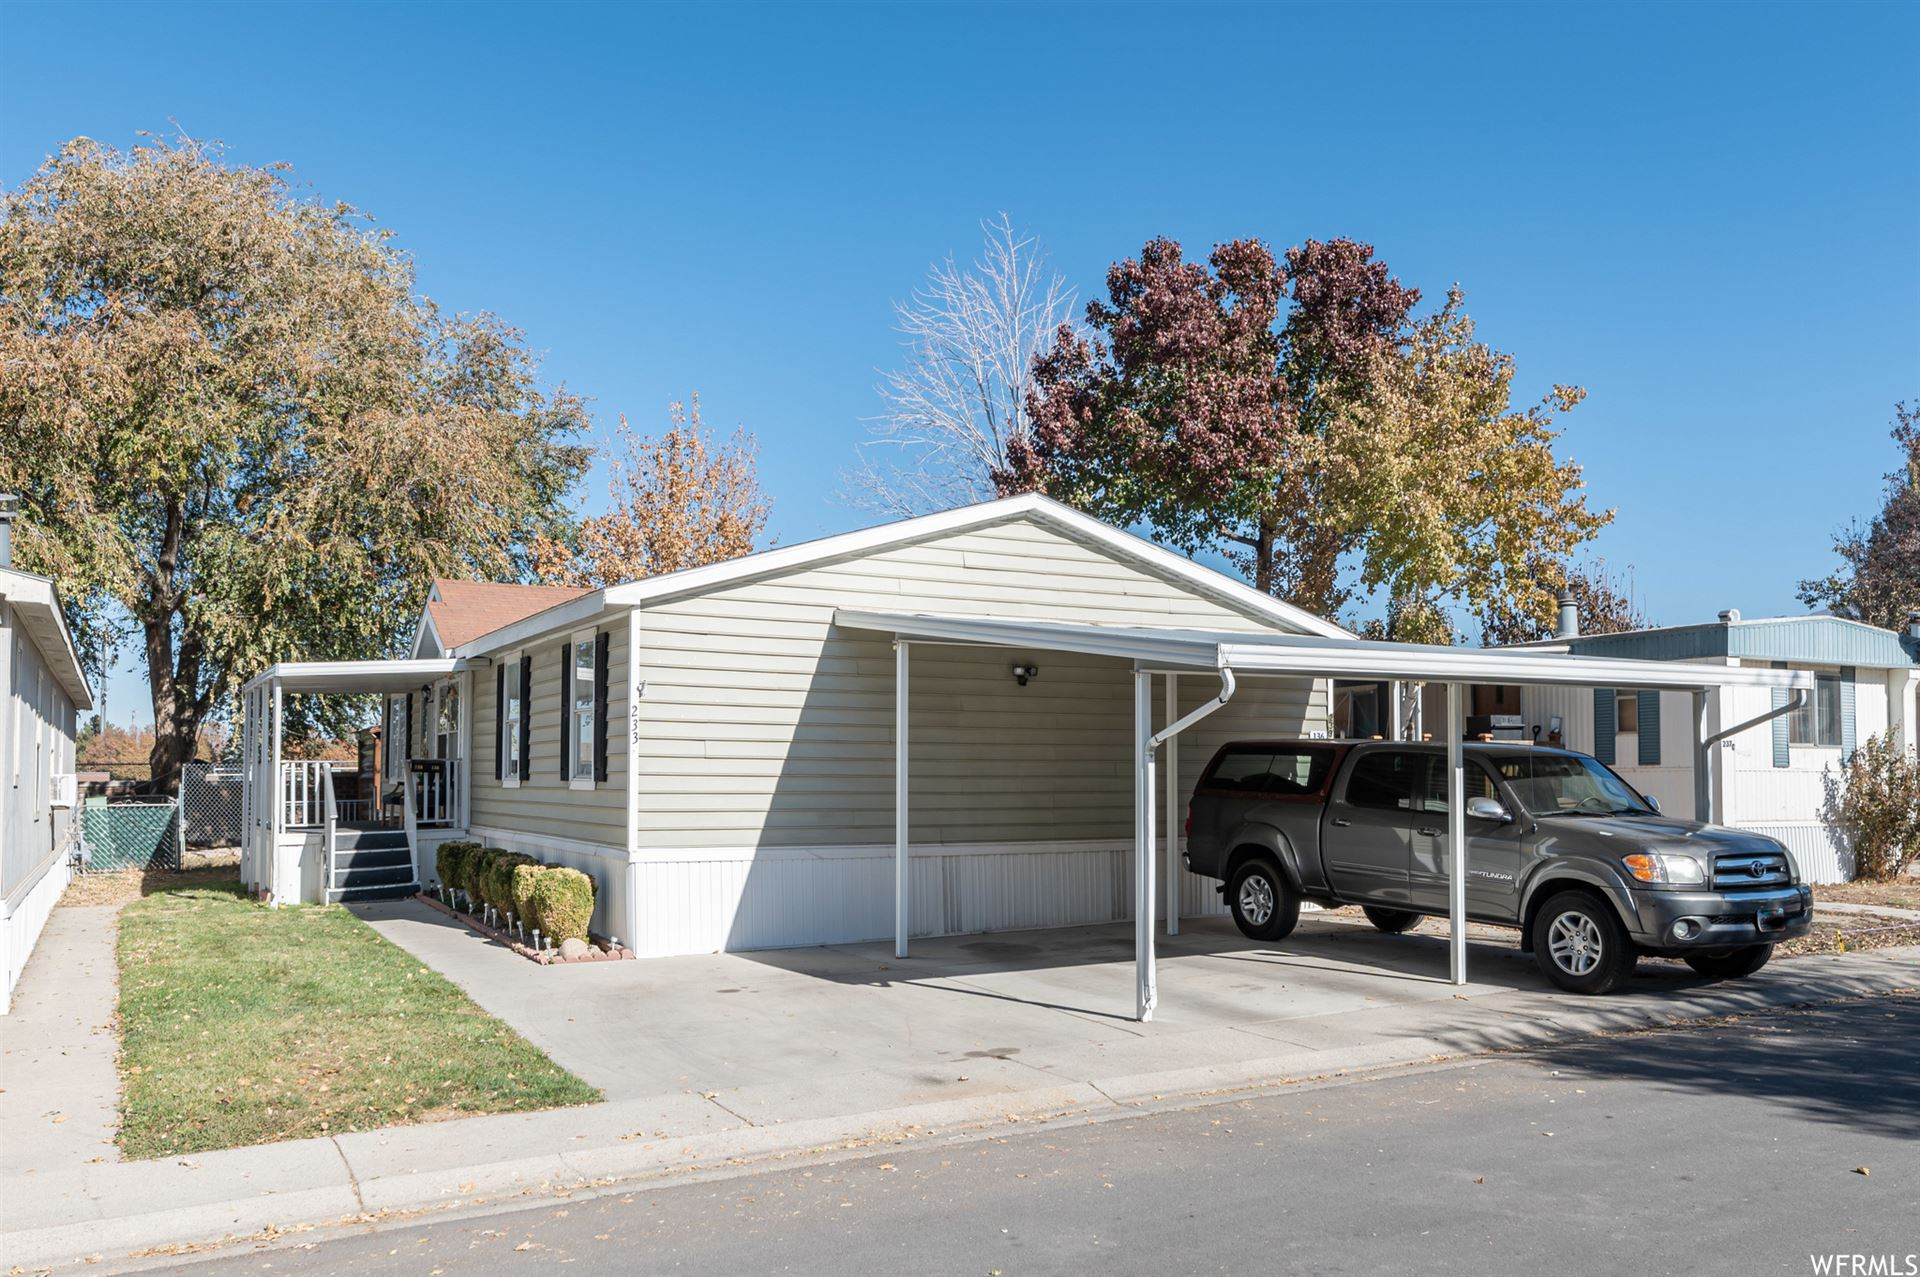 Photo of 233 E JORDAN VIEW DR S #136, Sandy, UT 84070 (MLS # 1710786)